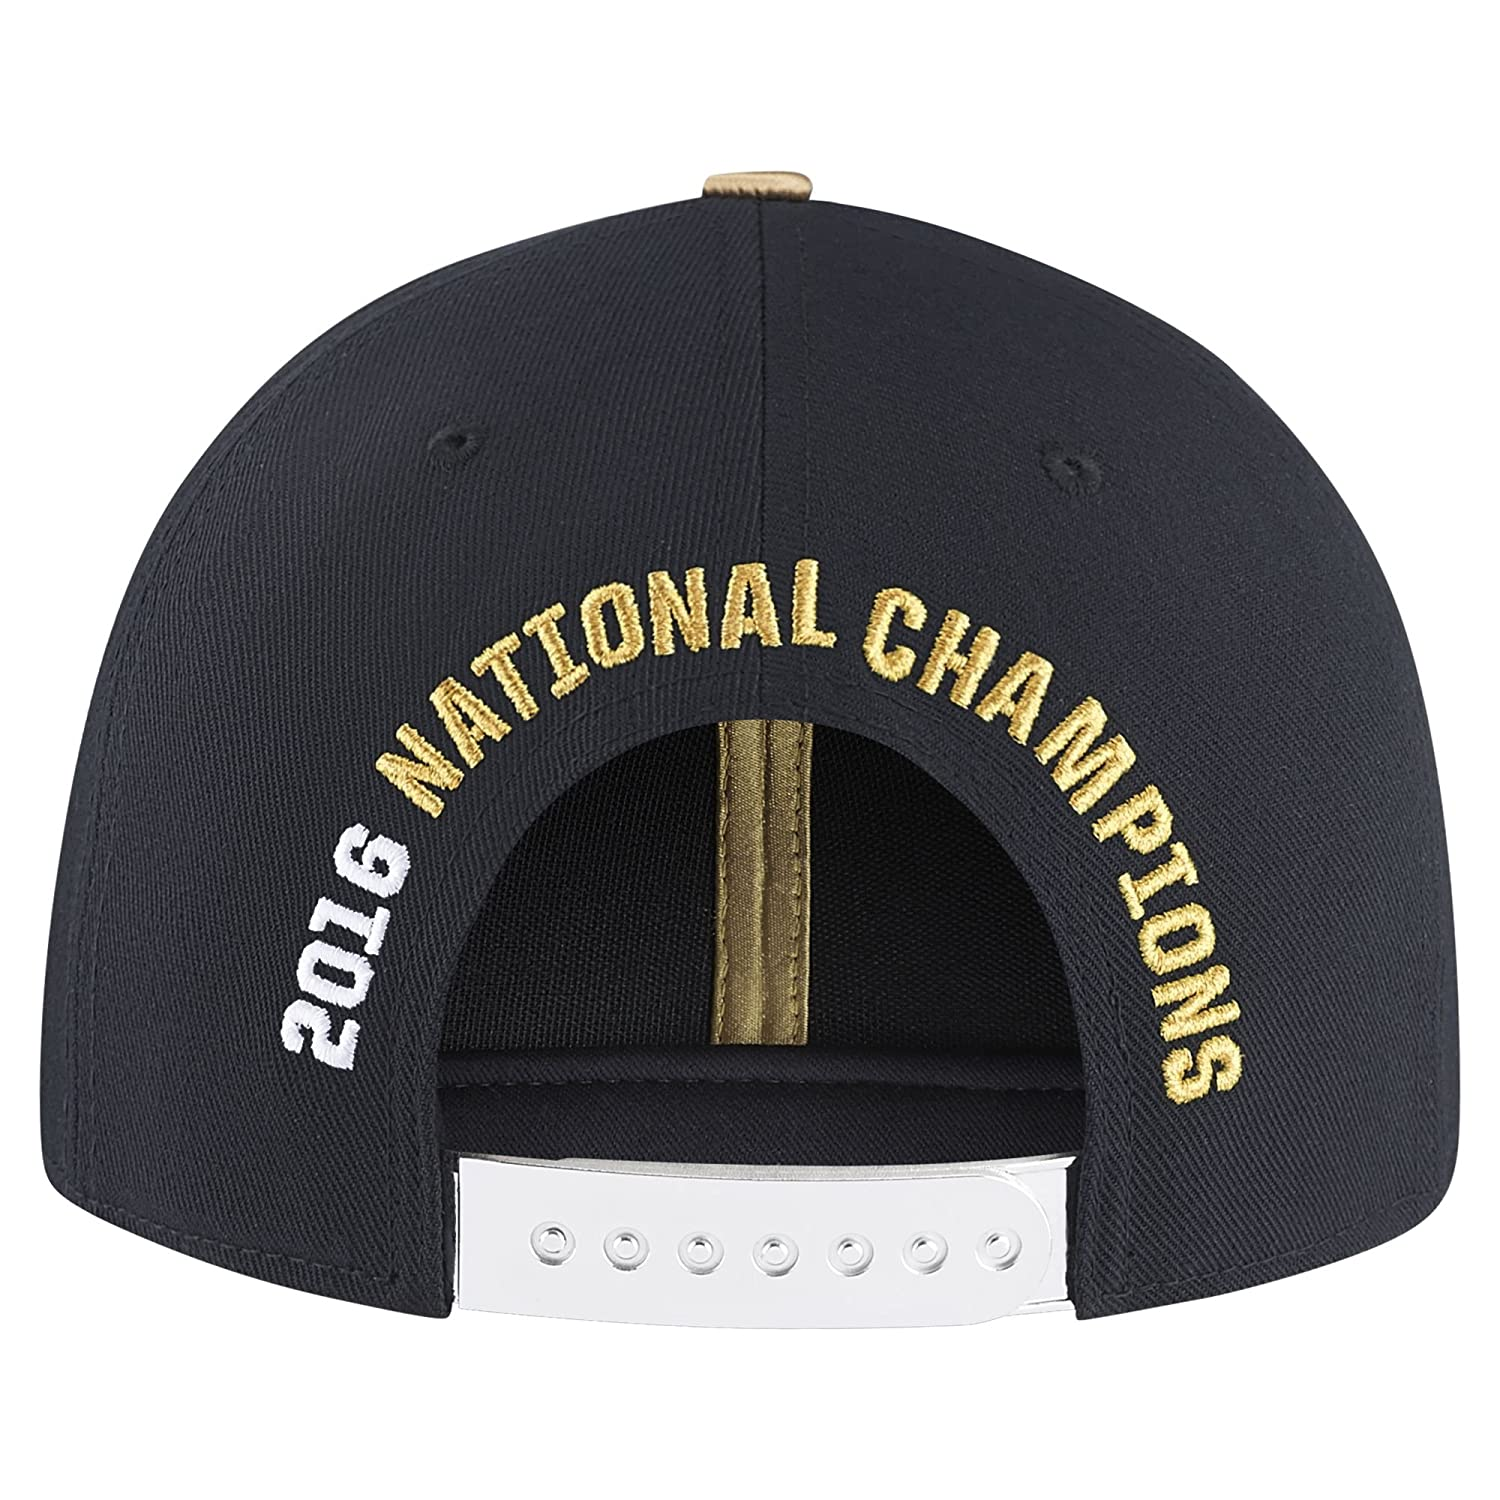 innovative design 829e4 7799c Amazon.com   Clemson Tigers Nike College Football Playoff 2016 National  Champions Locker Room Coaches Classic 99 Adjustable Snapback Hat   Sports    Outdoors